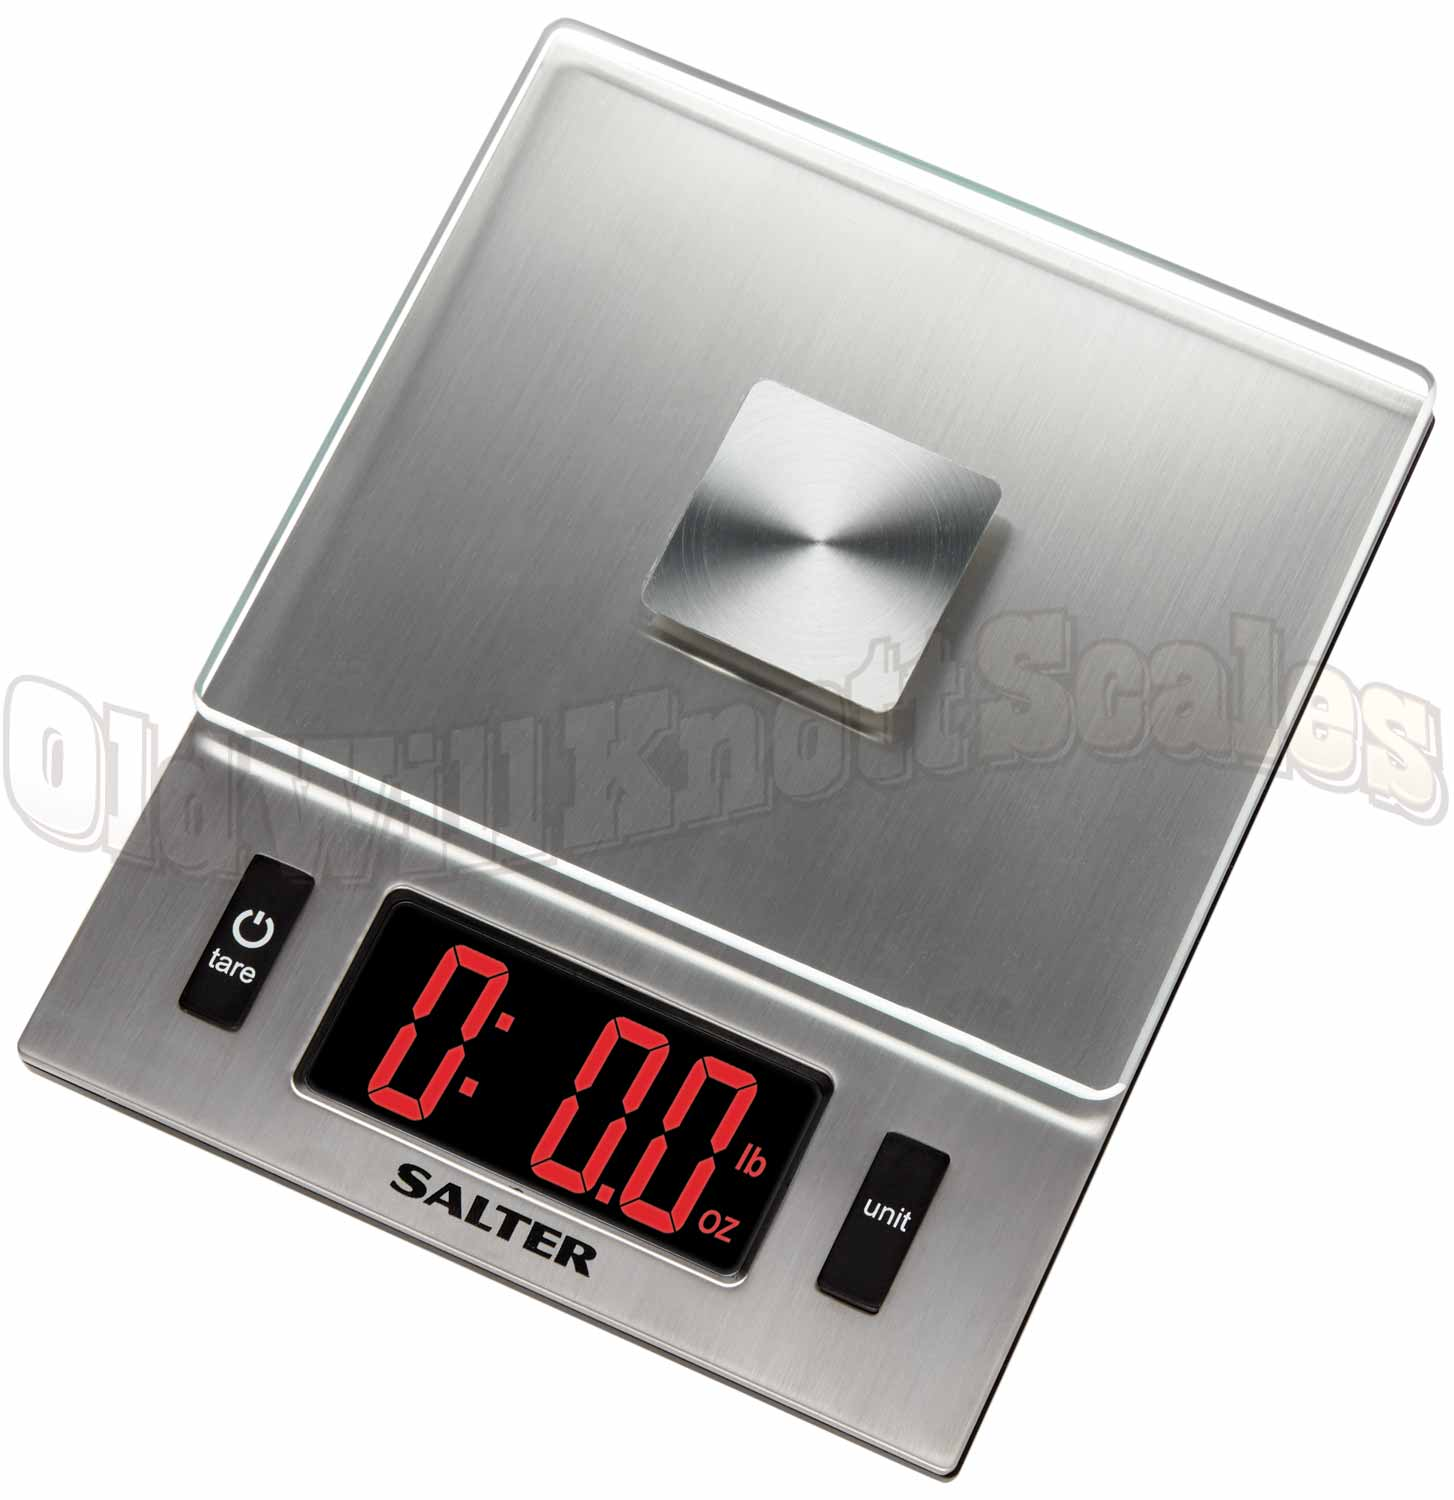 salter 1069sv digital kitchen scale with large led and glass platform - Digital Kitchen Scale